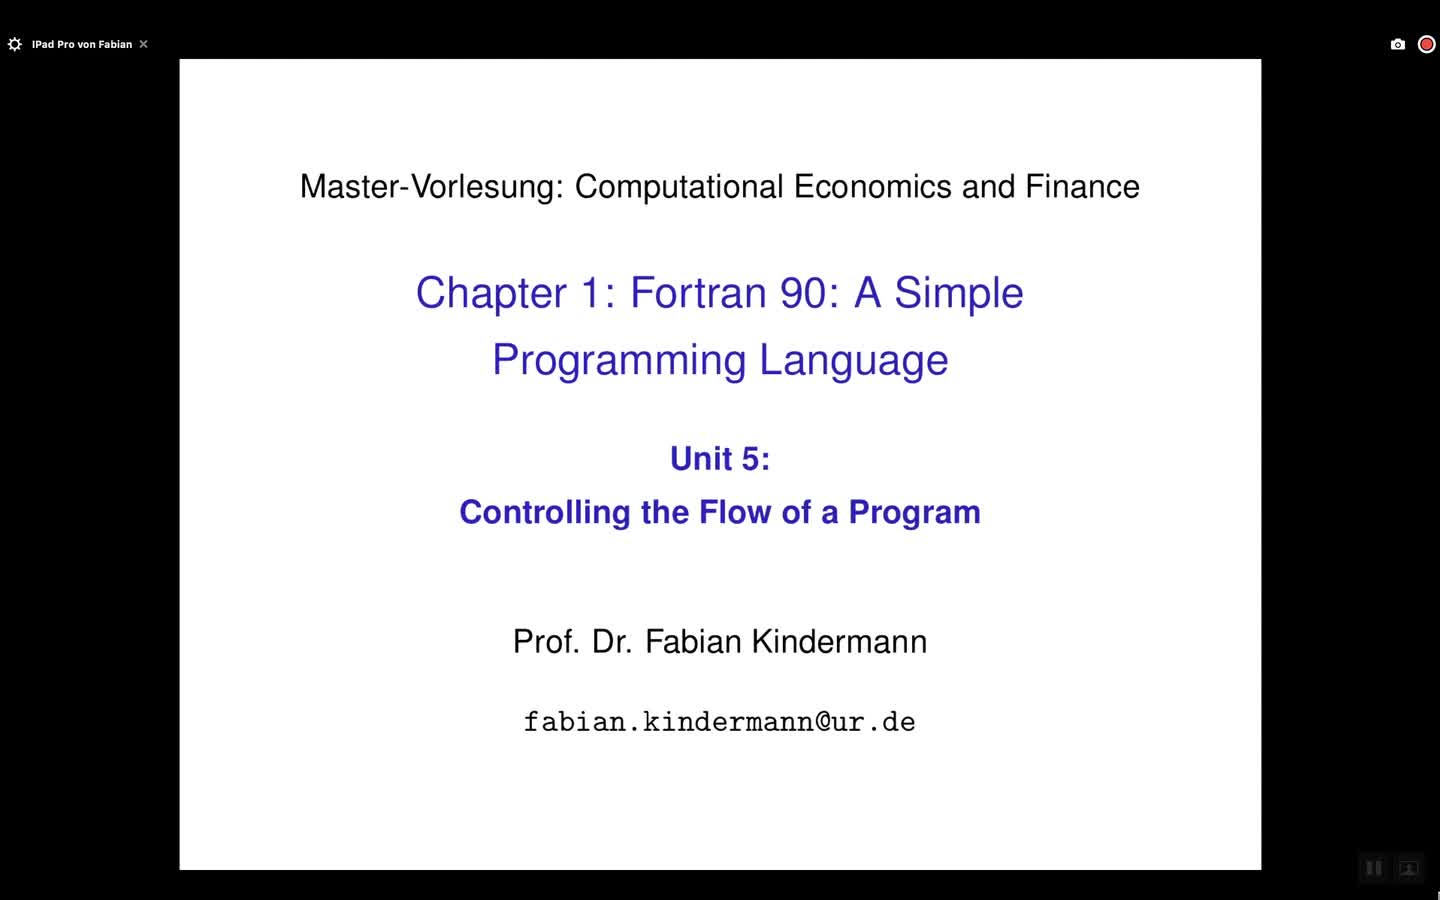 Chapter 1 - Unit 5 - Controlling the Flow of a Program